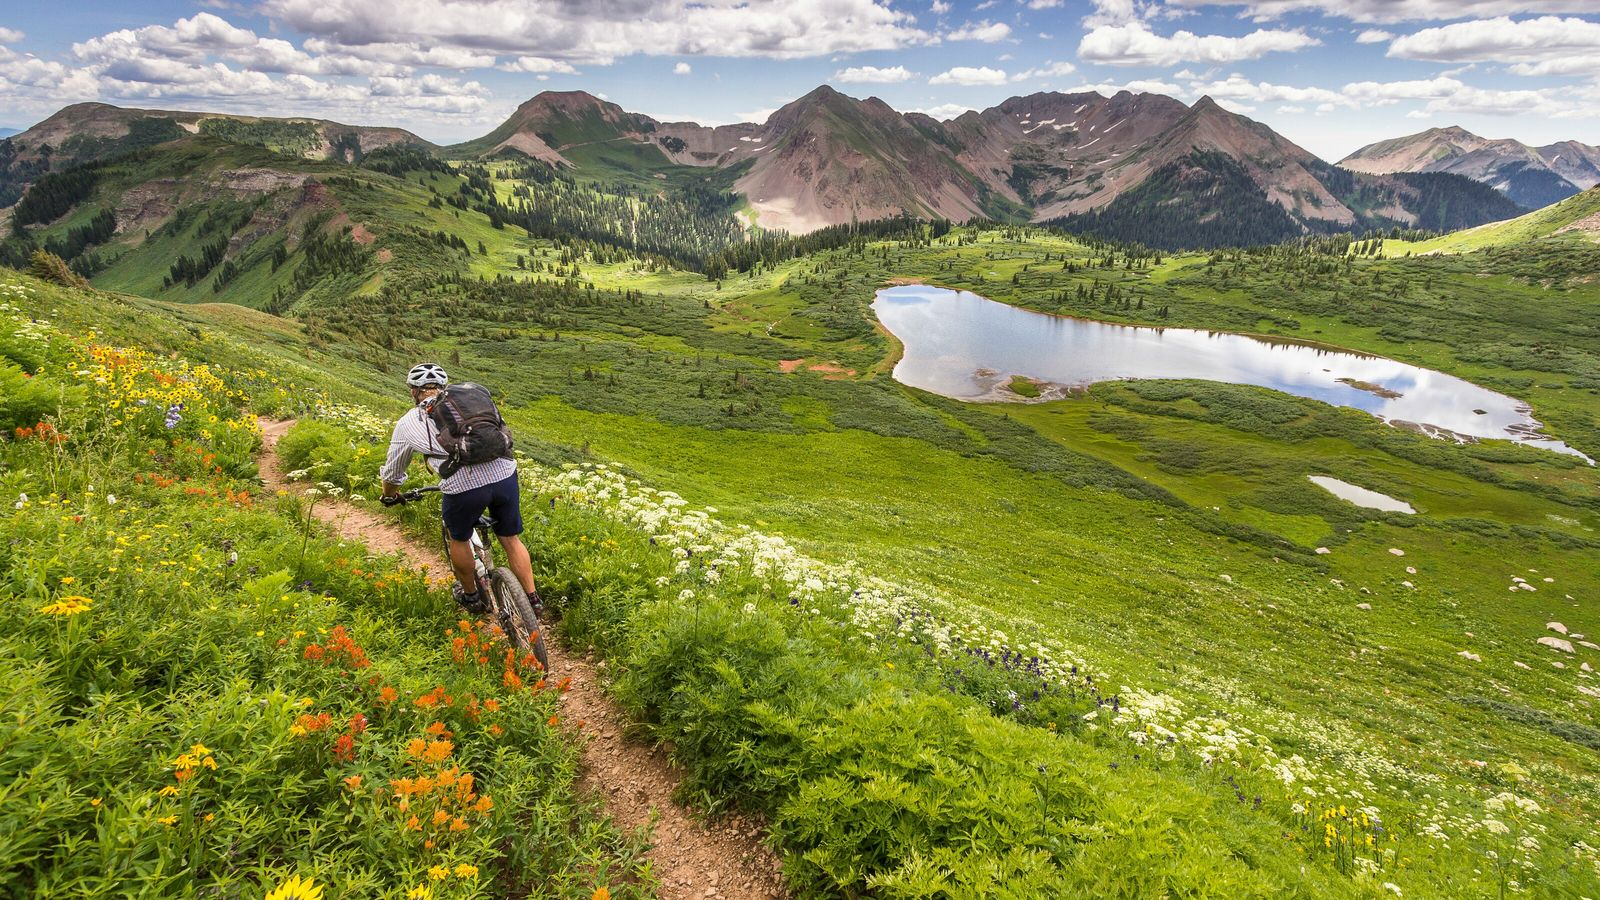 Mountain biking on the long-distance Colorado Trail, which runsfor 486 miles fromWaterton Canyon, southwest of Denver, ...